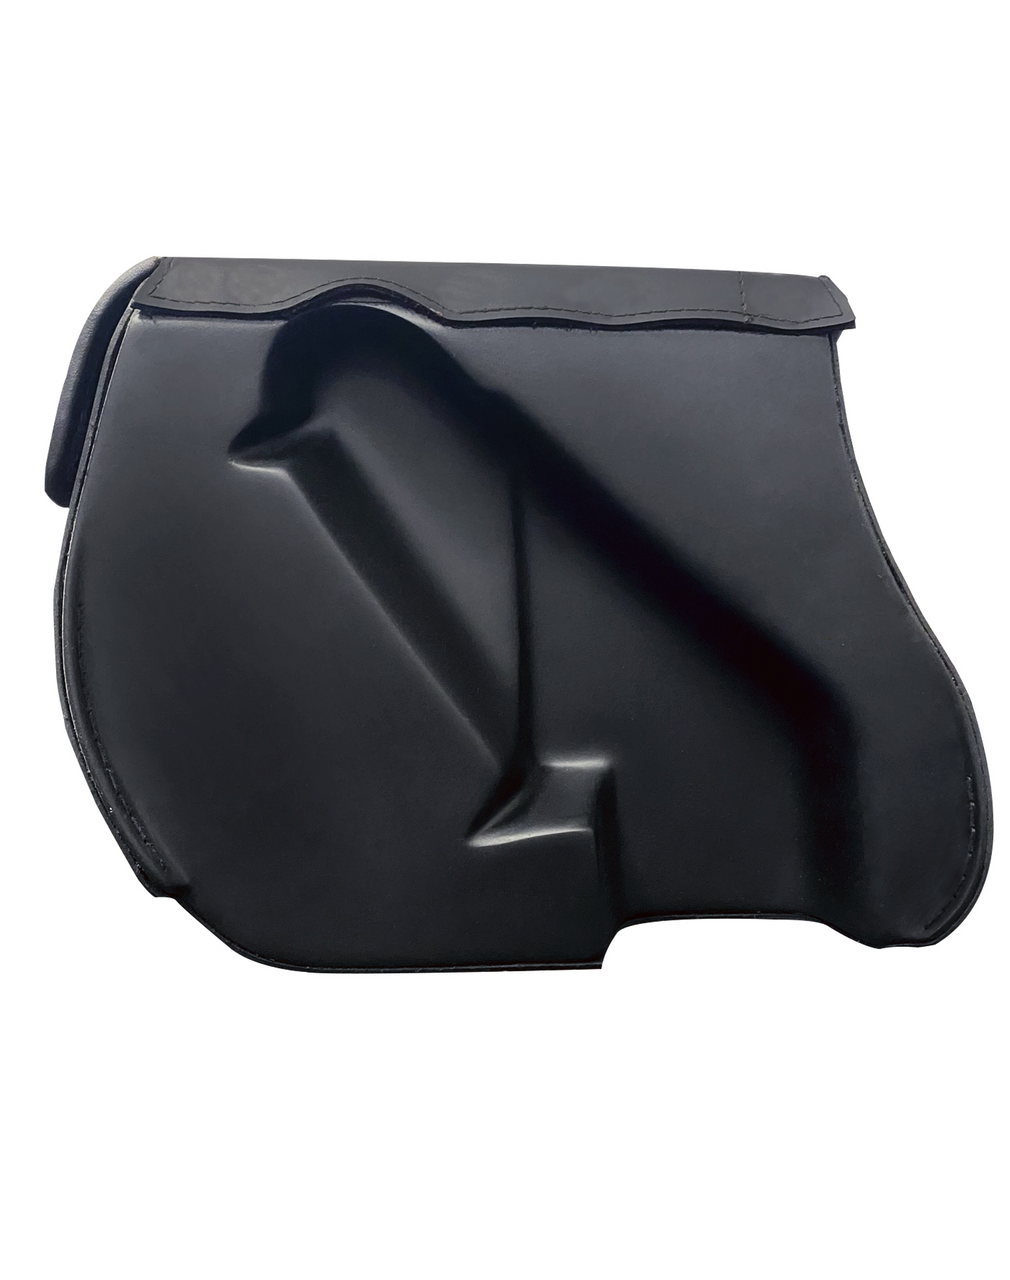 VikingBags Specific Medium Double Strap Shock Cutout Motorcycle Saddlebags For Harley Dyna Switchback Shock Cutout View